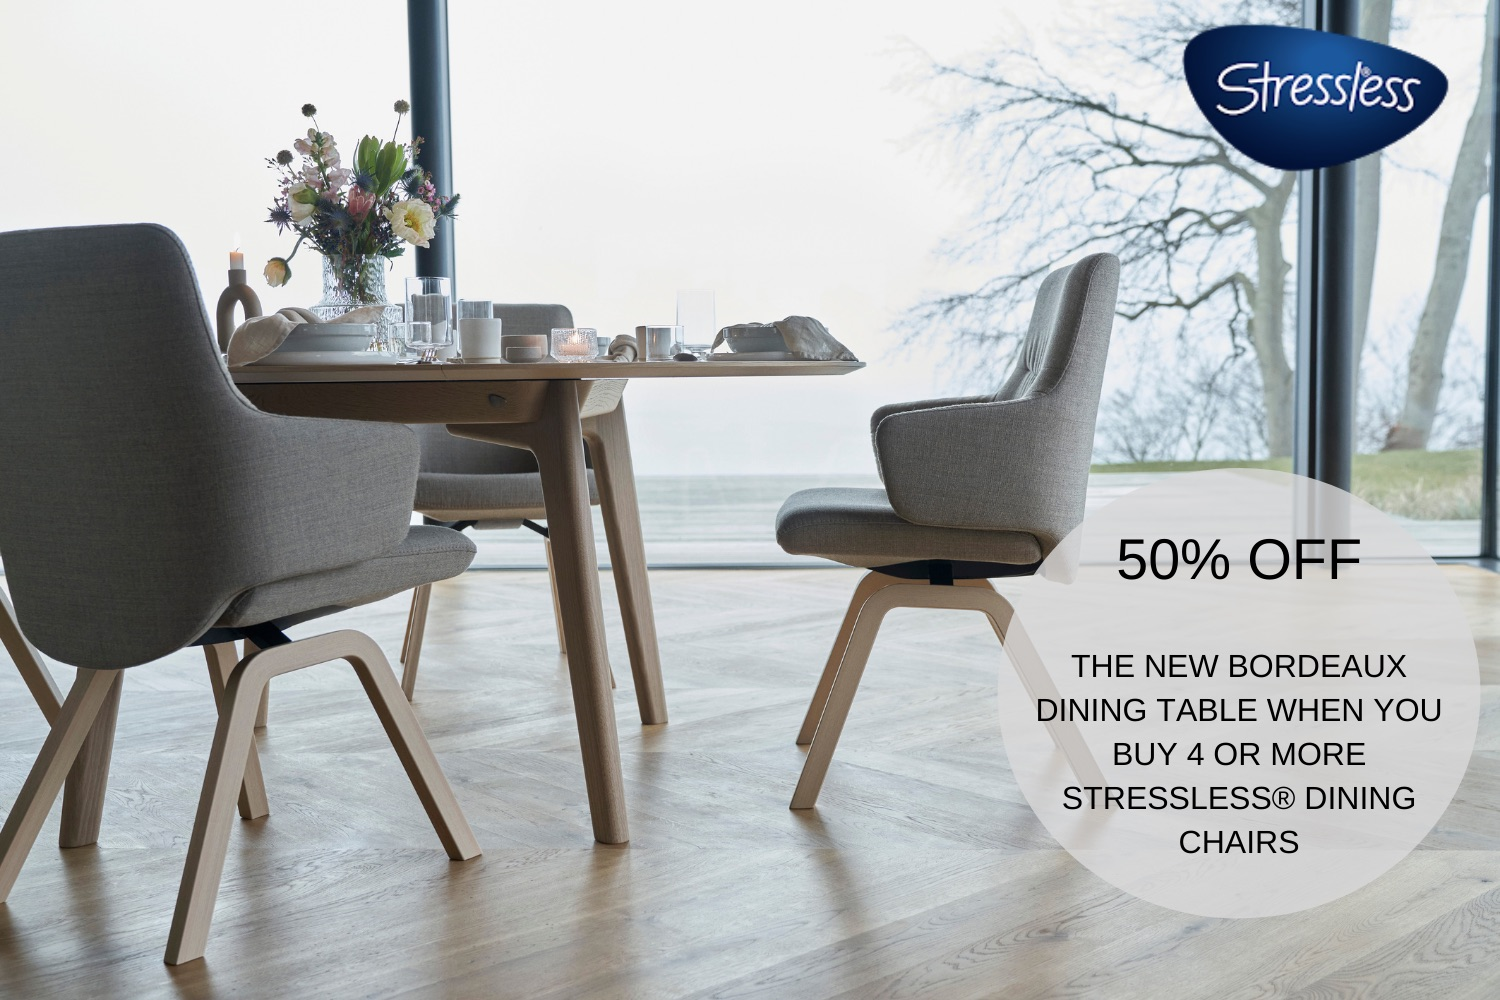 Stressless dining promotion